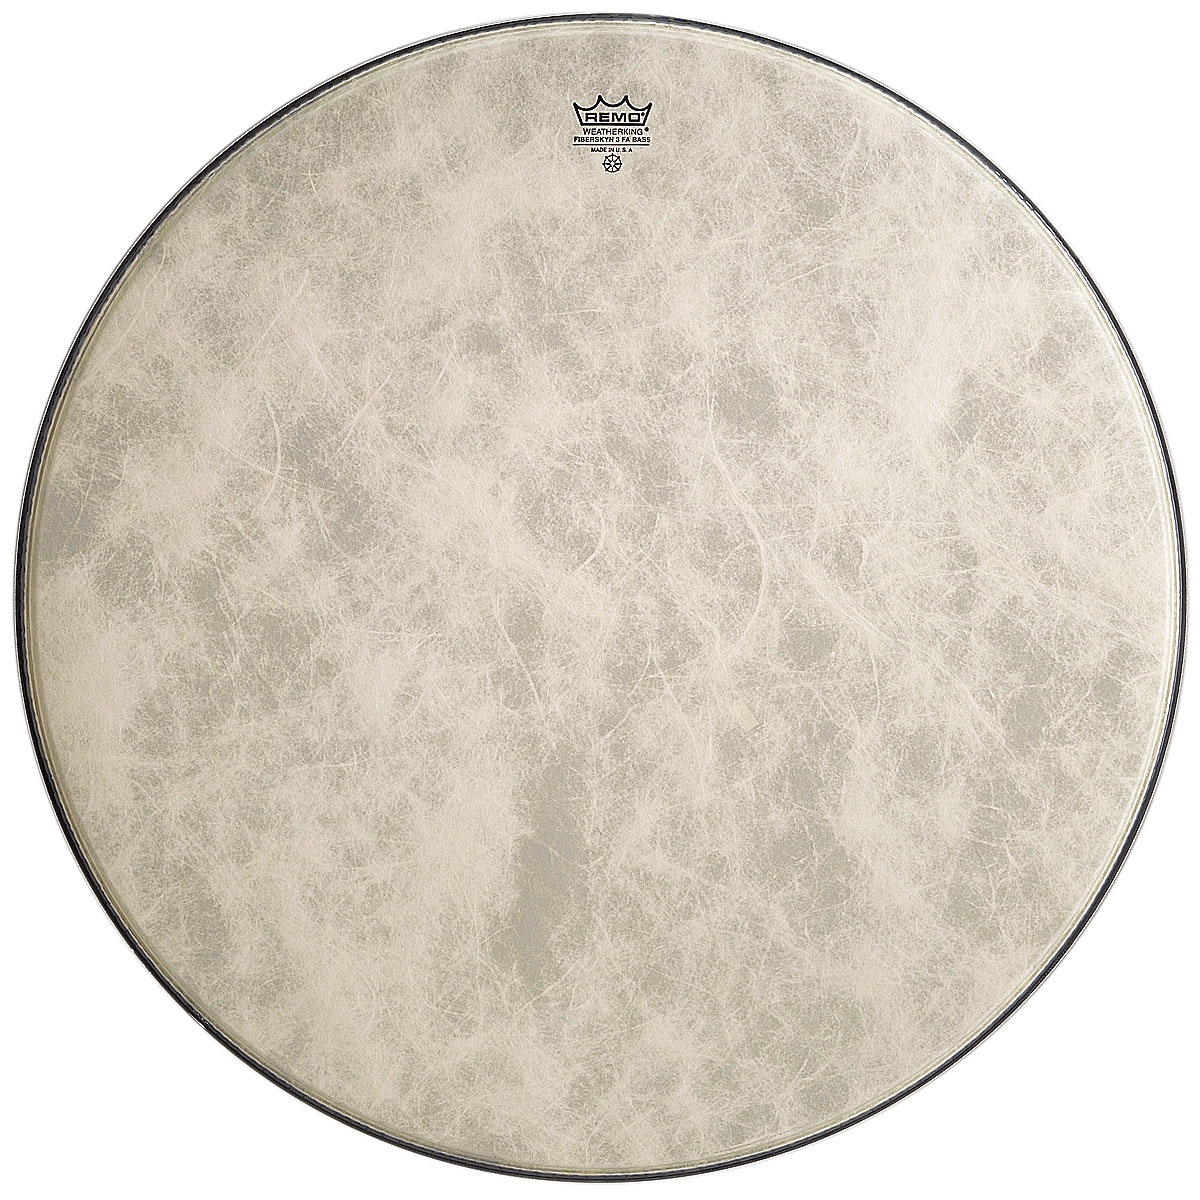 "Remo 18"" Ambassador Fiberskyn Bass Drum Head"